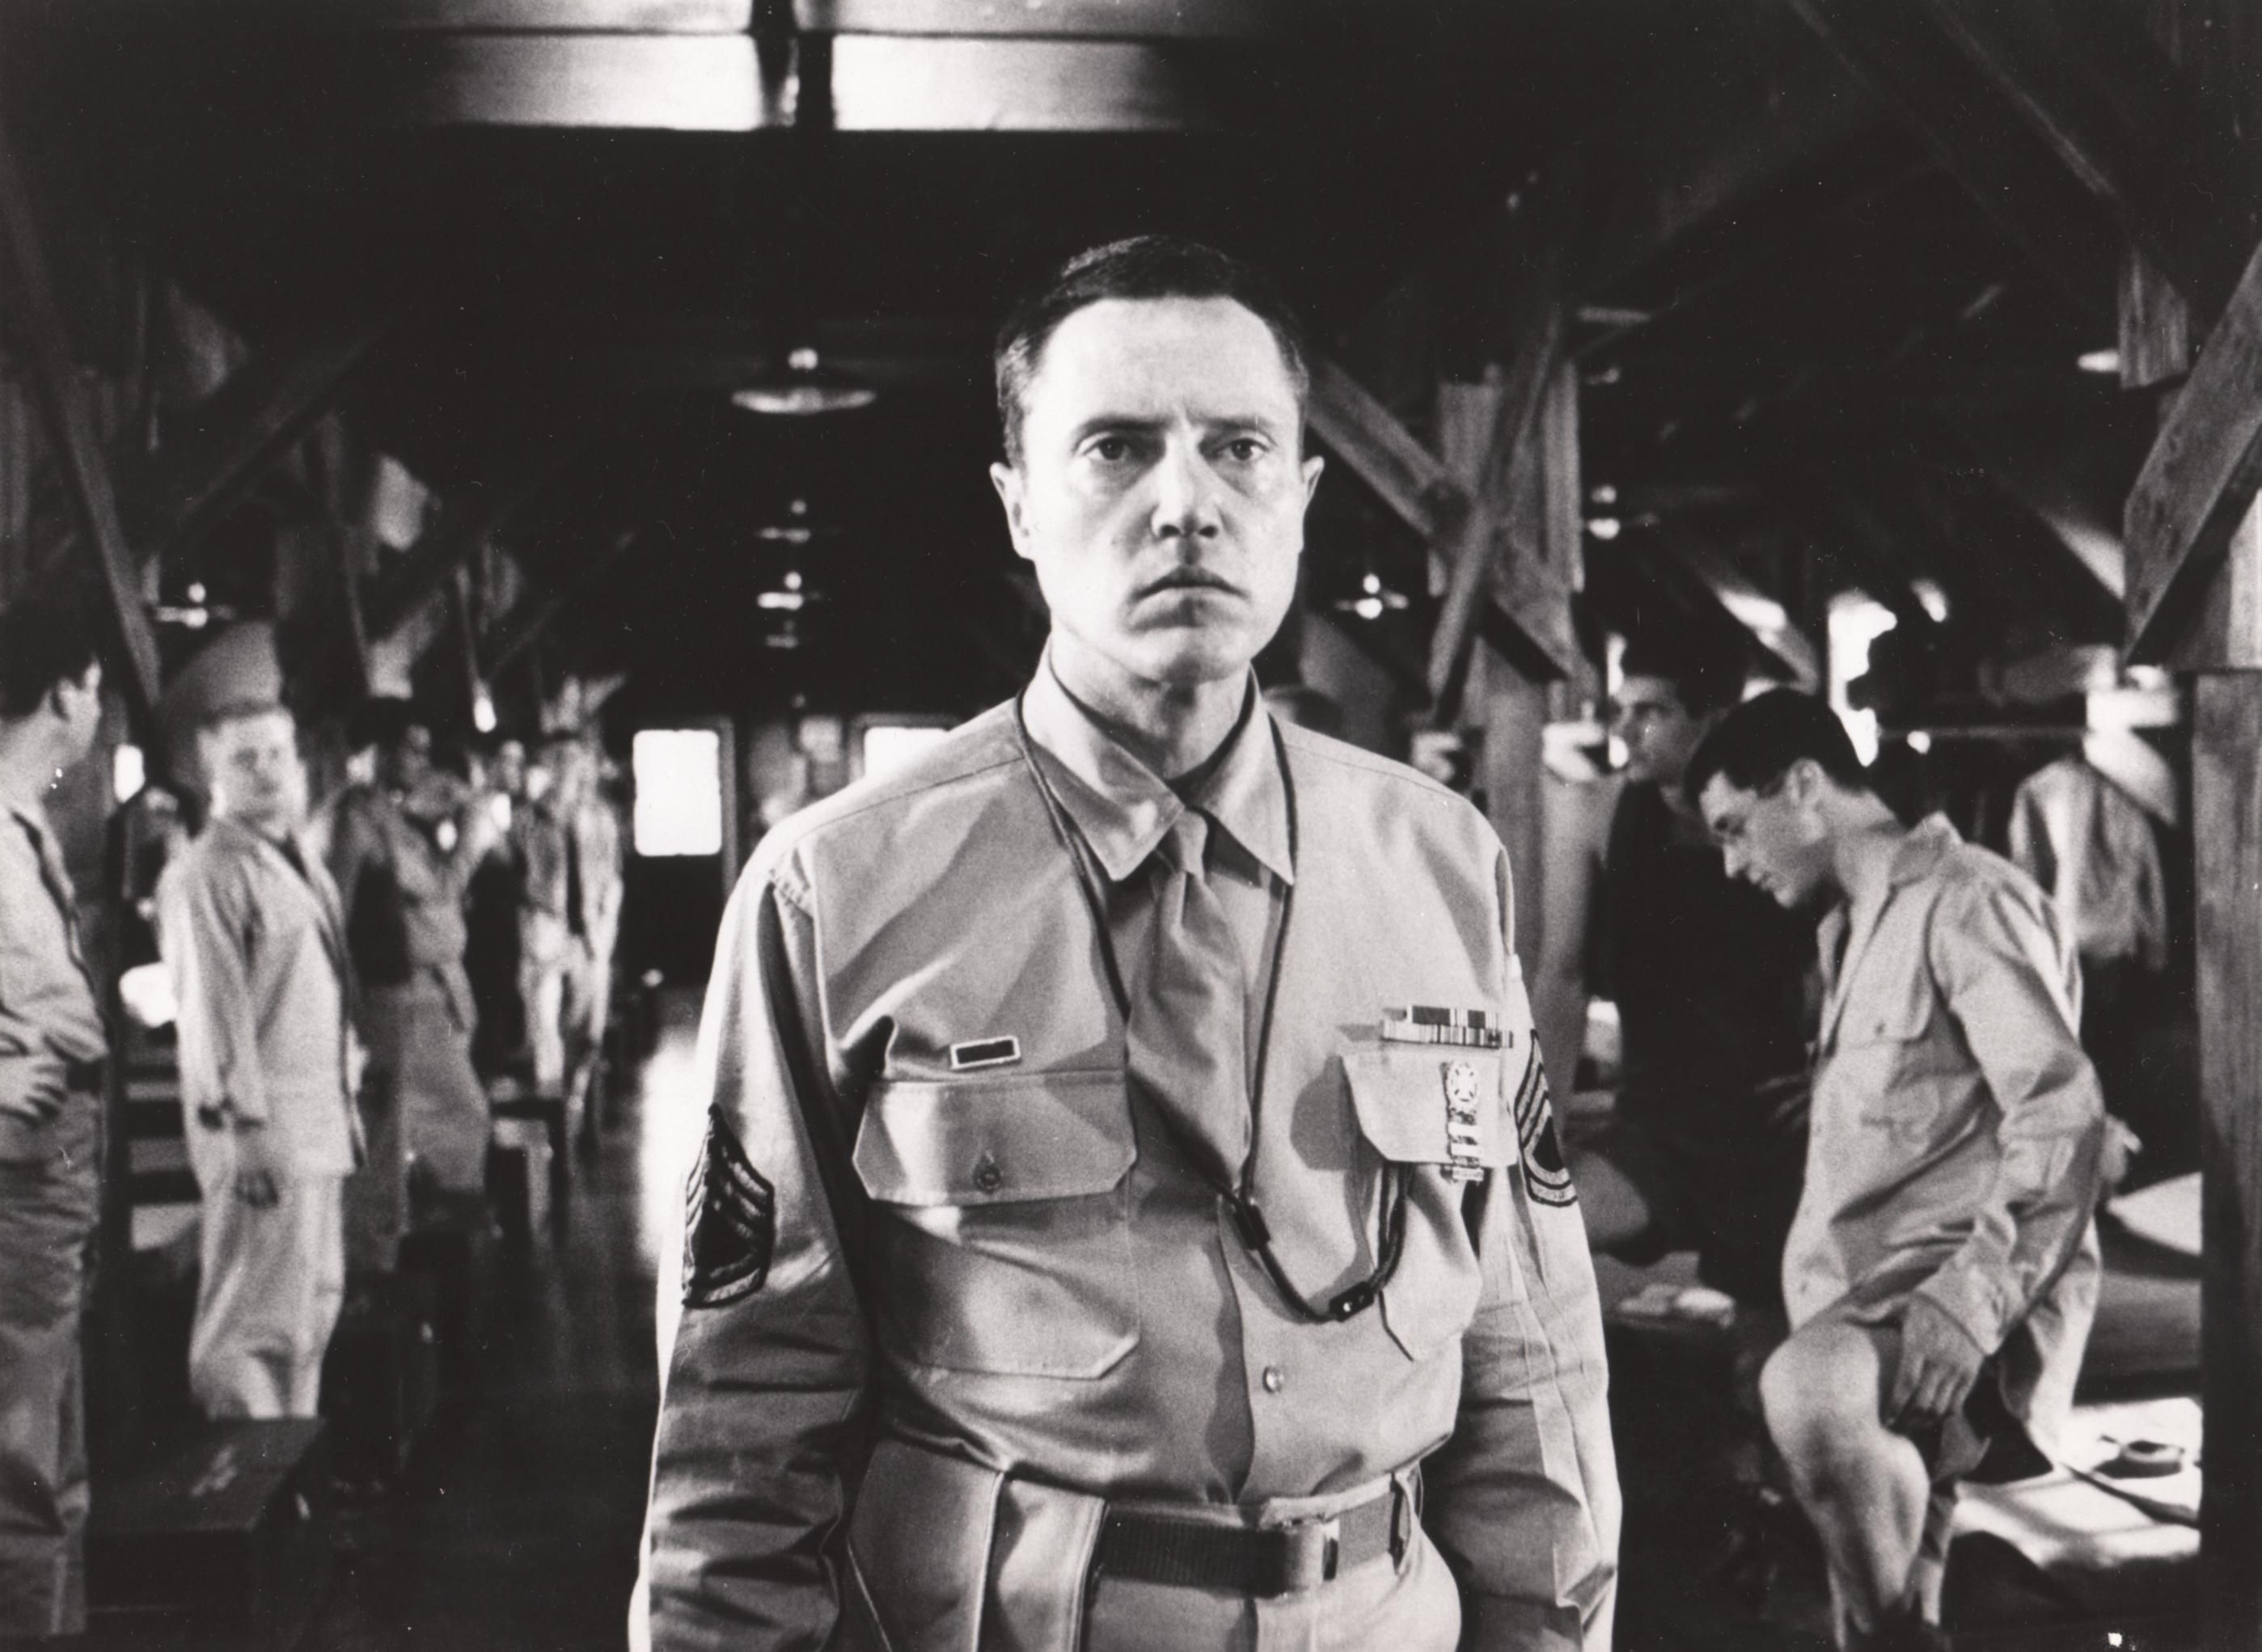 Biloxi Blues Movie Still 1988 Christopher Walken As Sgt Merwin